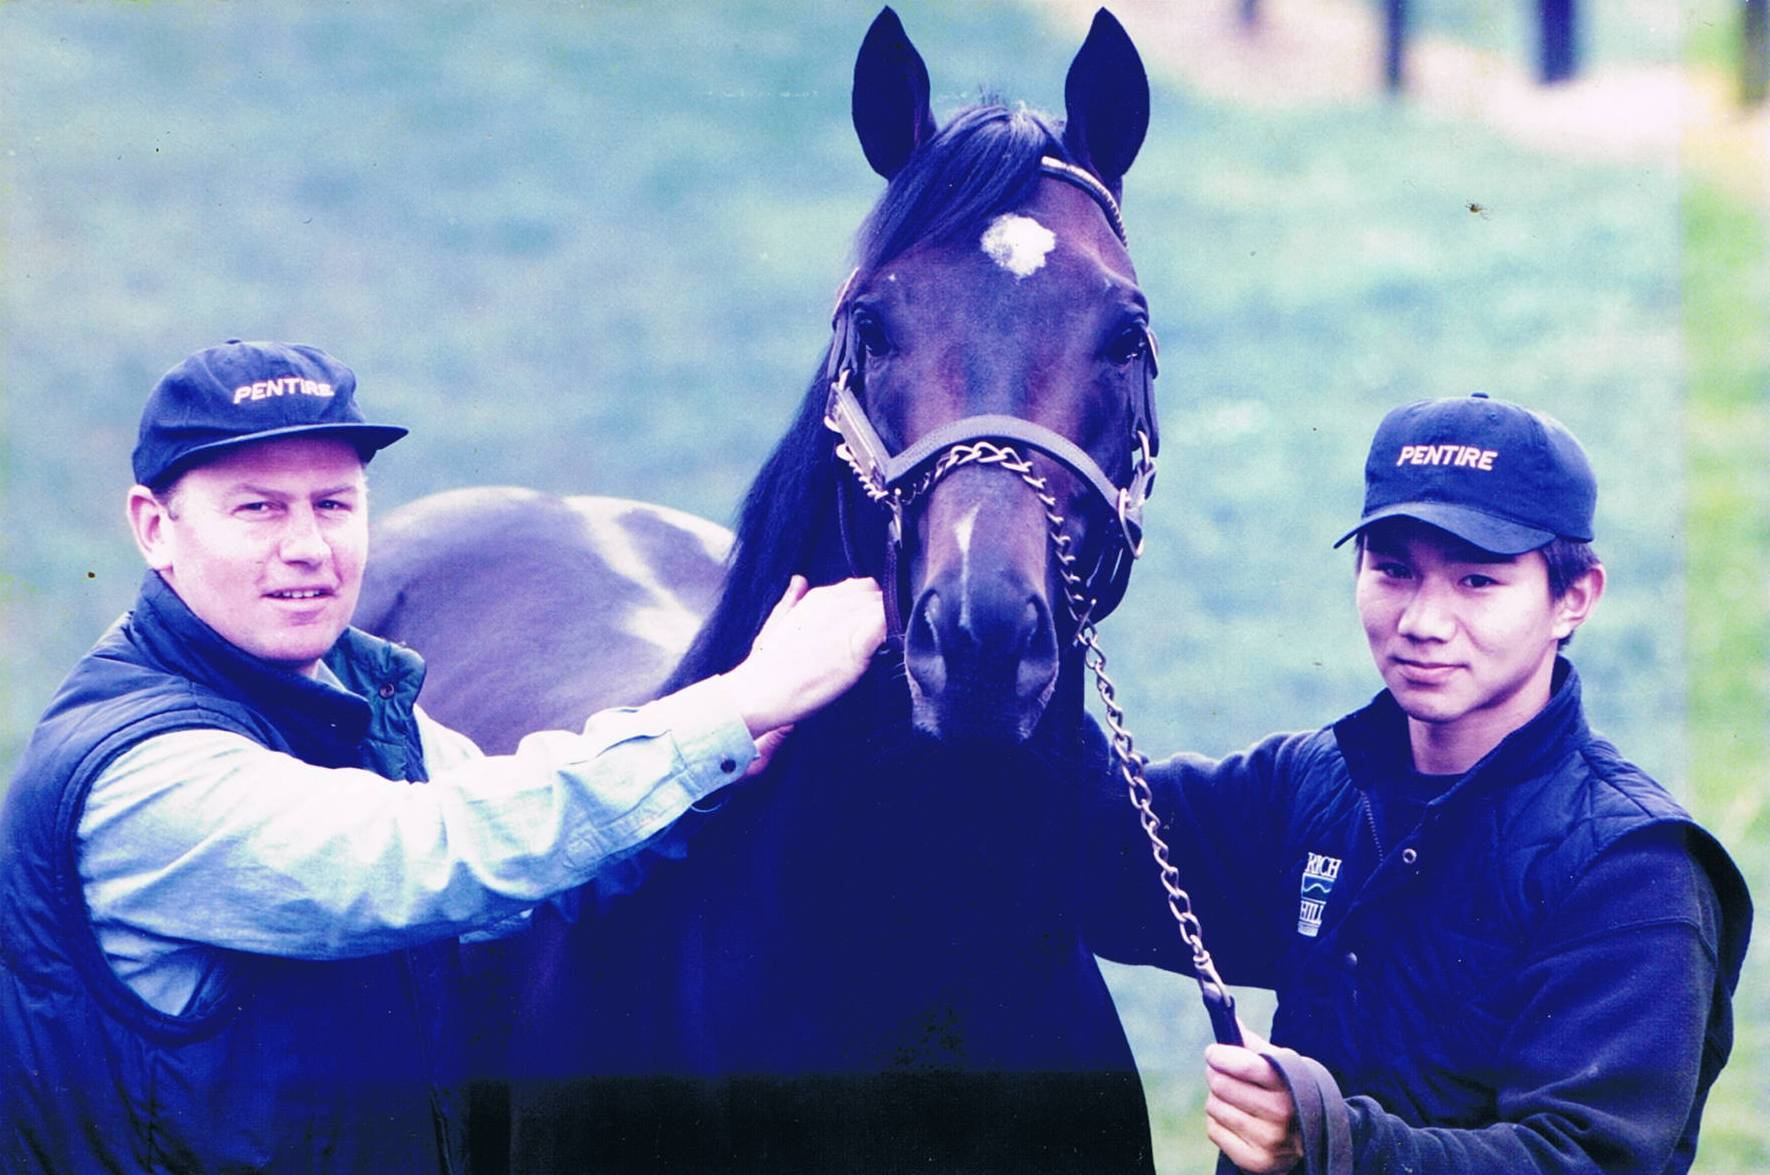 John Thompson with Pentire and Japanese groom Naoki Sakota soon after the stallion's arrival at Rich Hill Stud